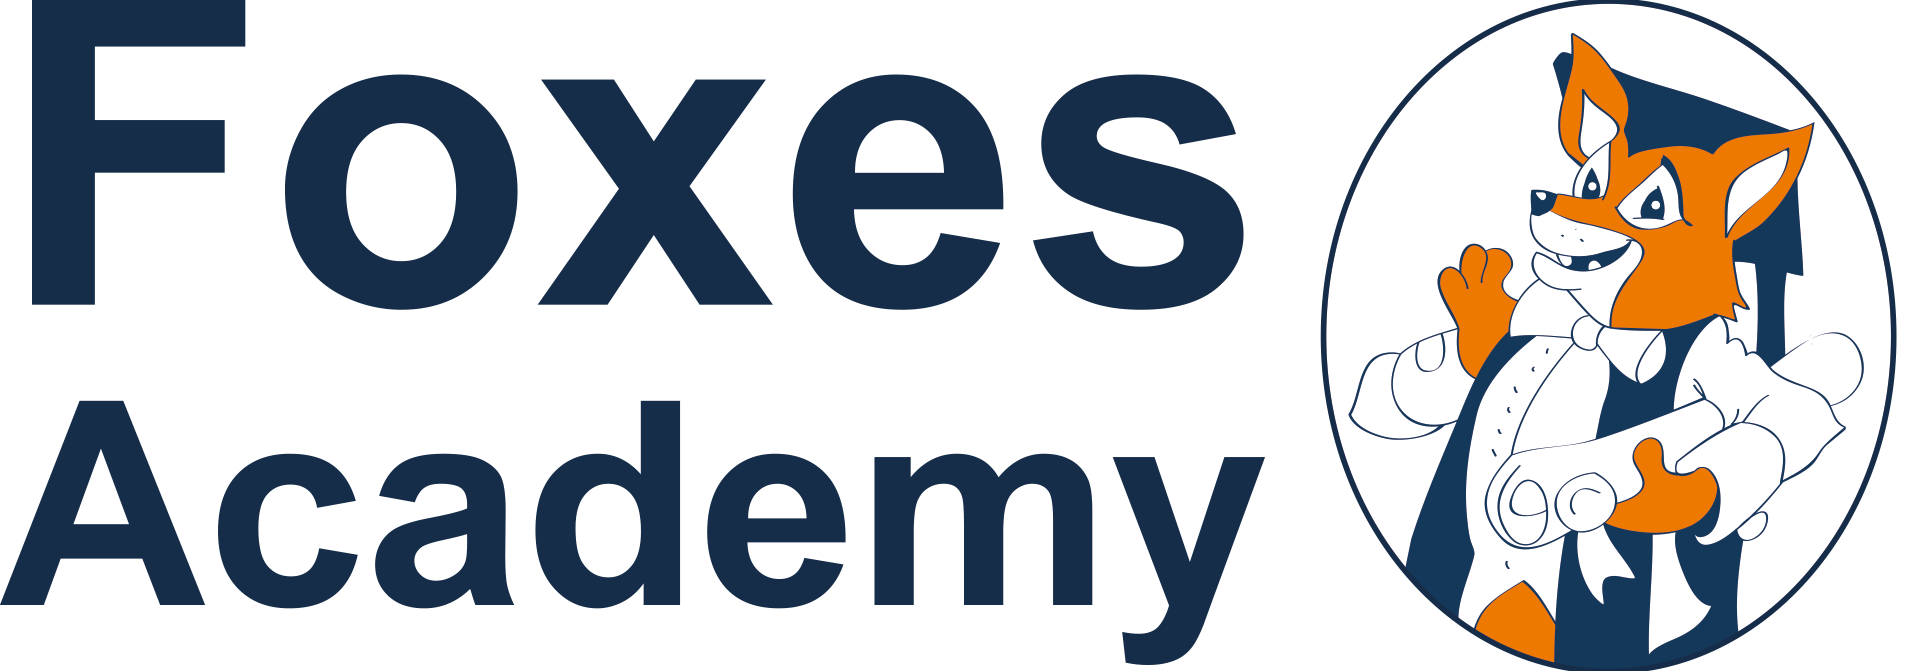 The logo of Foxes Academy